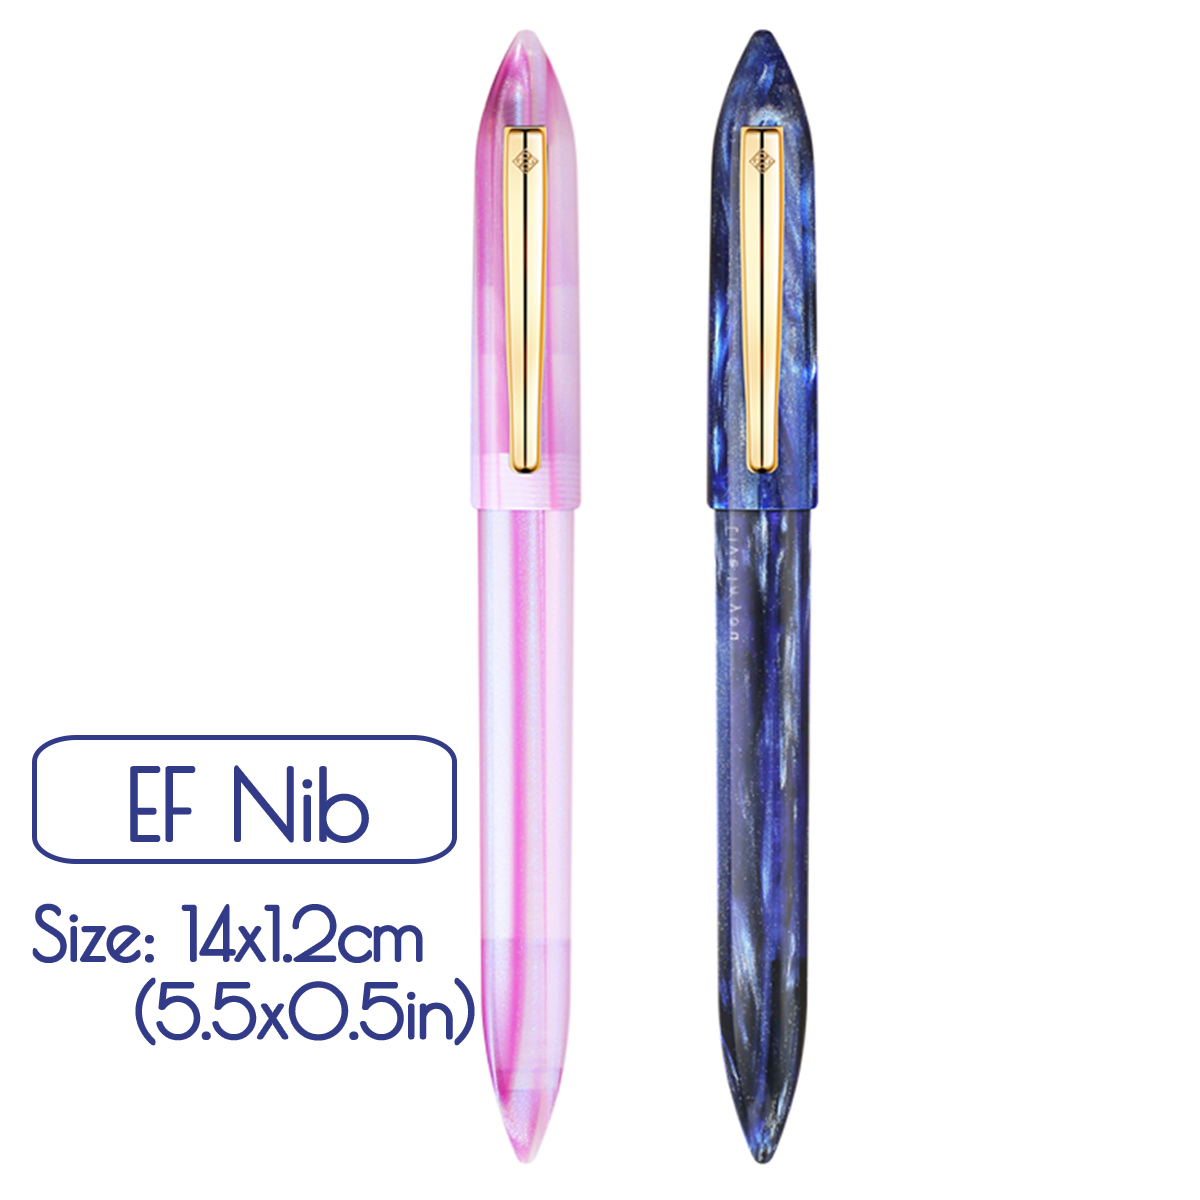 KICUTE EF Nib Fountain Pen Business Resin Fine Pen For Christmas Gift Wedding Signing School Office Supplies with Original BoxKICUTE EF Nib Fountain Pen Business Resin Fine Pen For Christmas Gift Wedding Signing School Office Supplies with Original Box